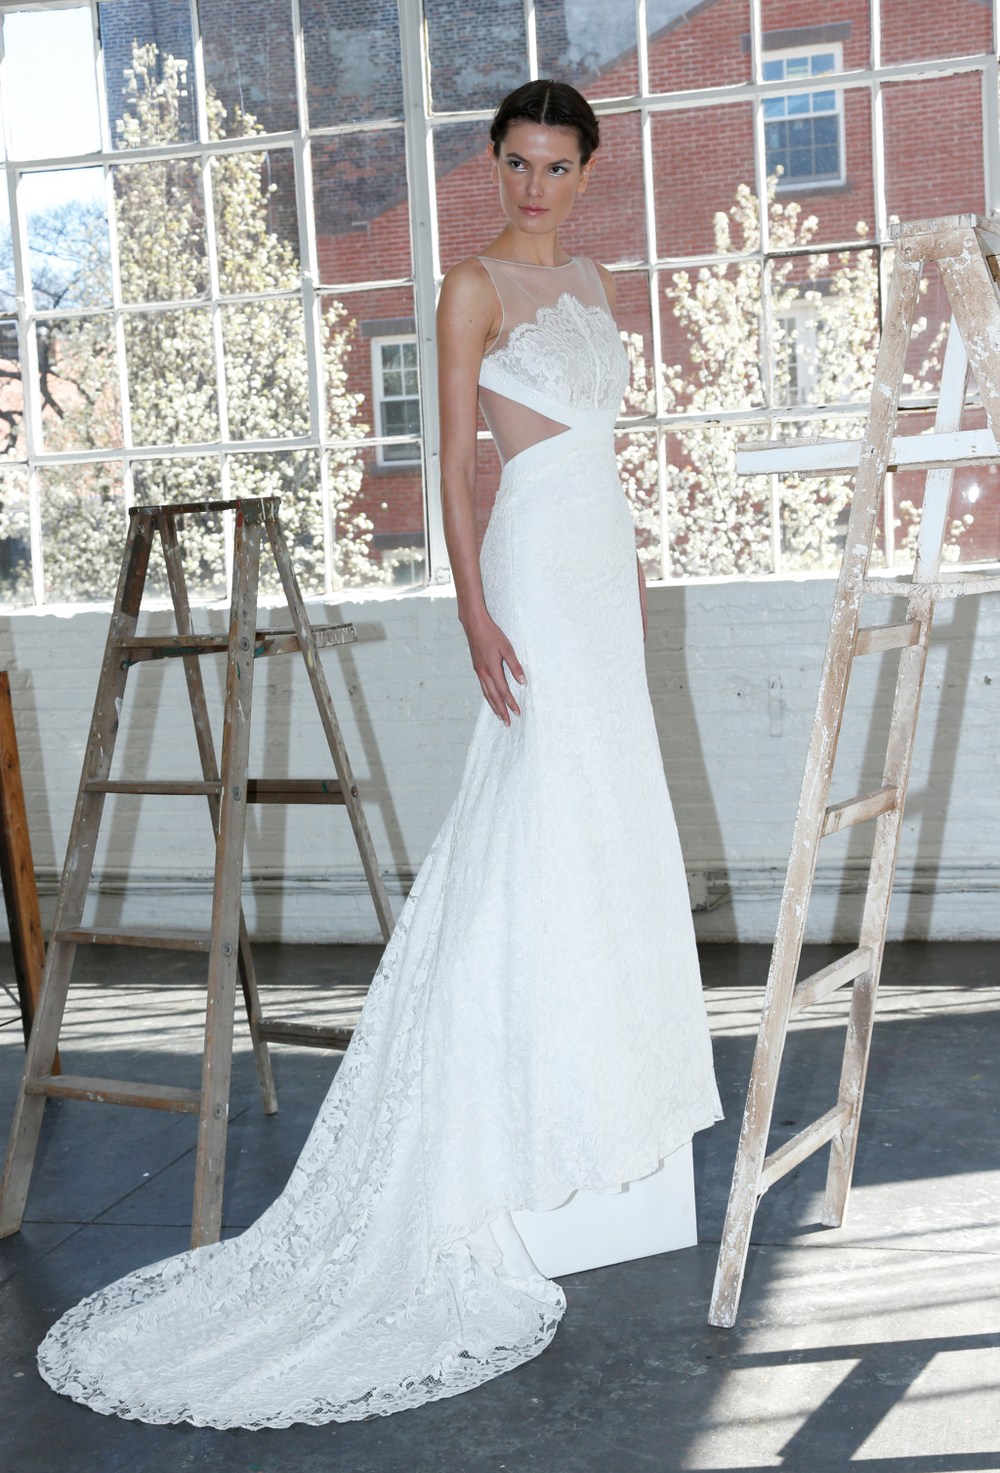 Lela Rose Bridal Gown available via our Nashville Bridal Shop. Photo via Thomas Iannaccone.